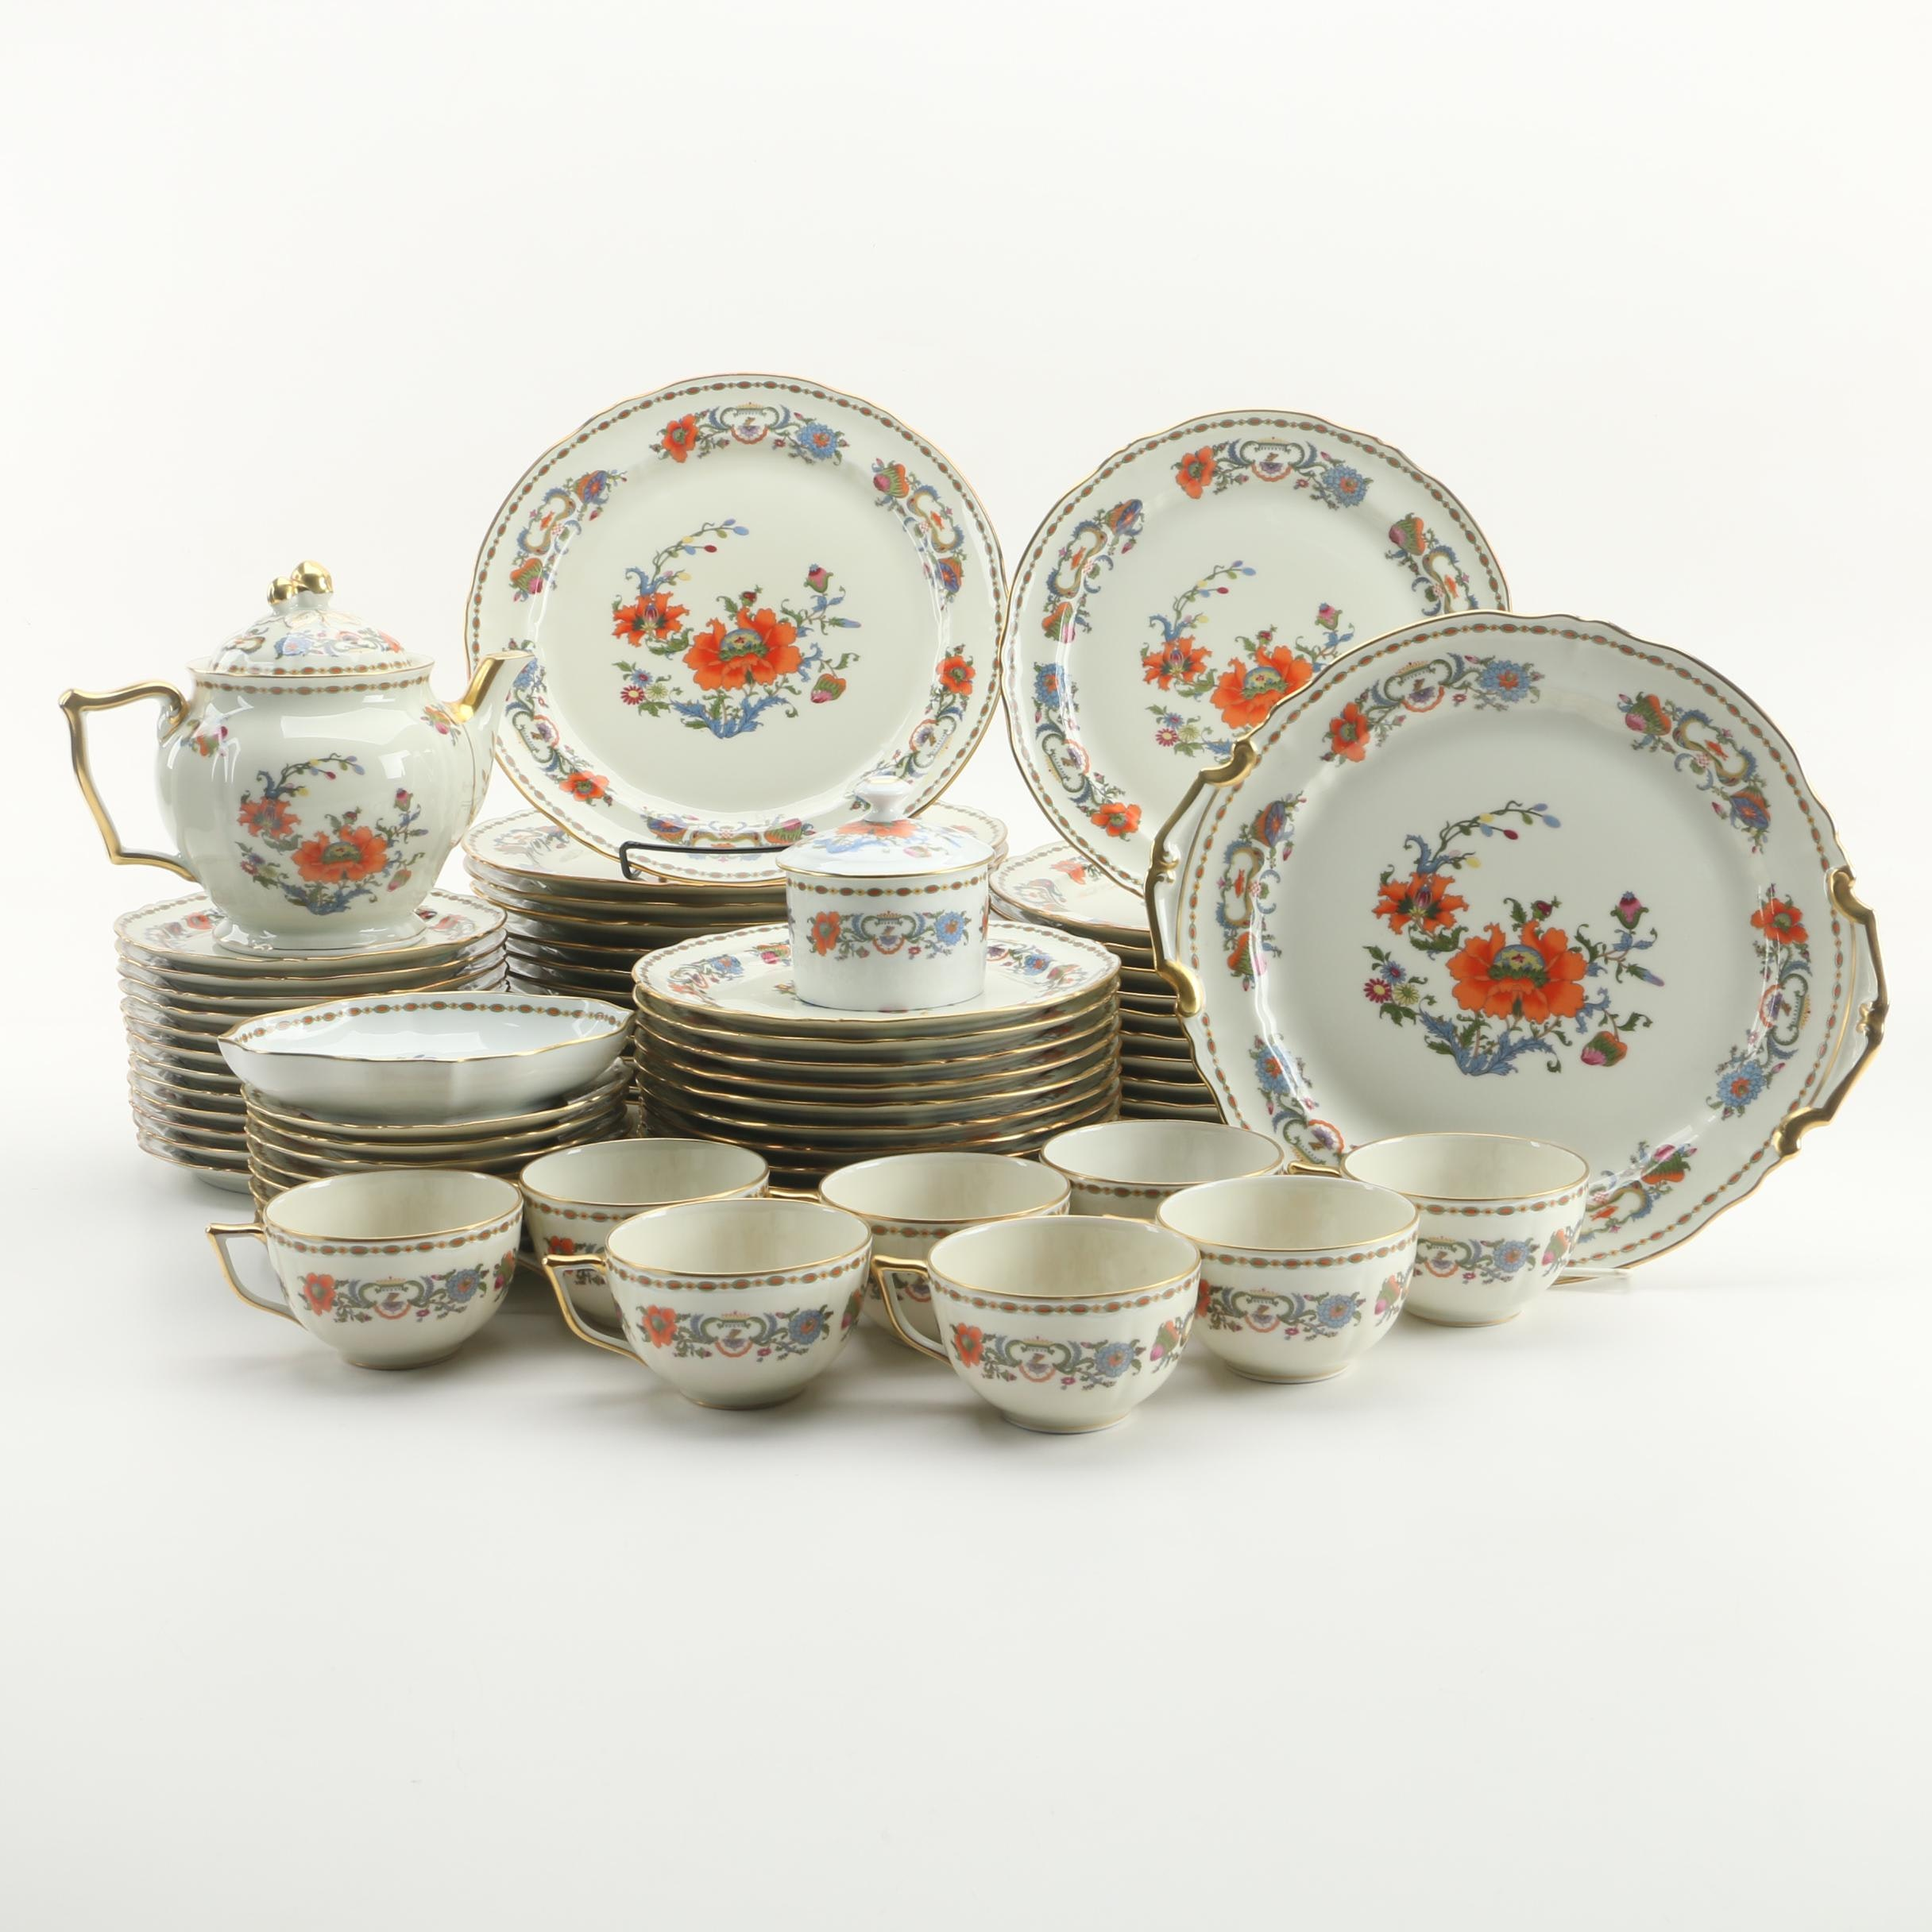 "Raynaud Limoges ""Vieux Chine"" Porcelain Dinner Service c. 1986-96"